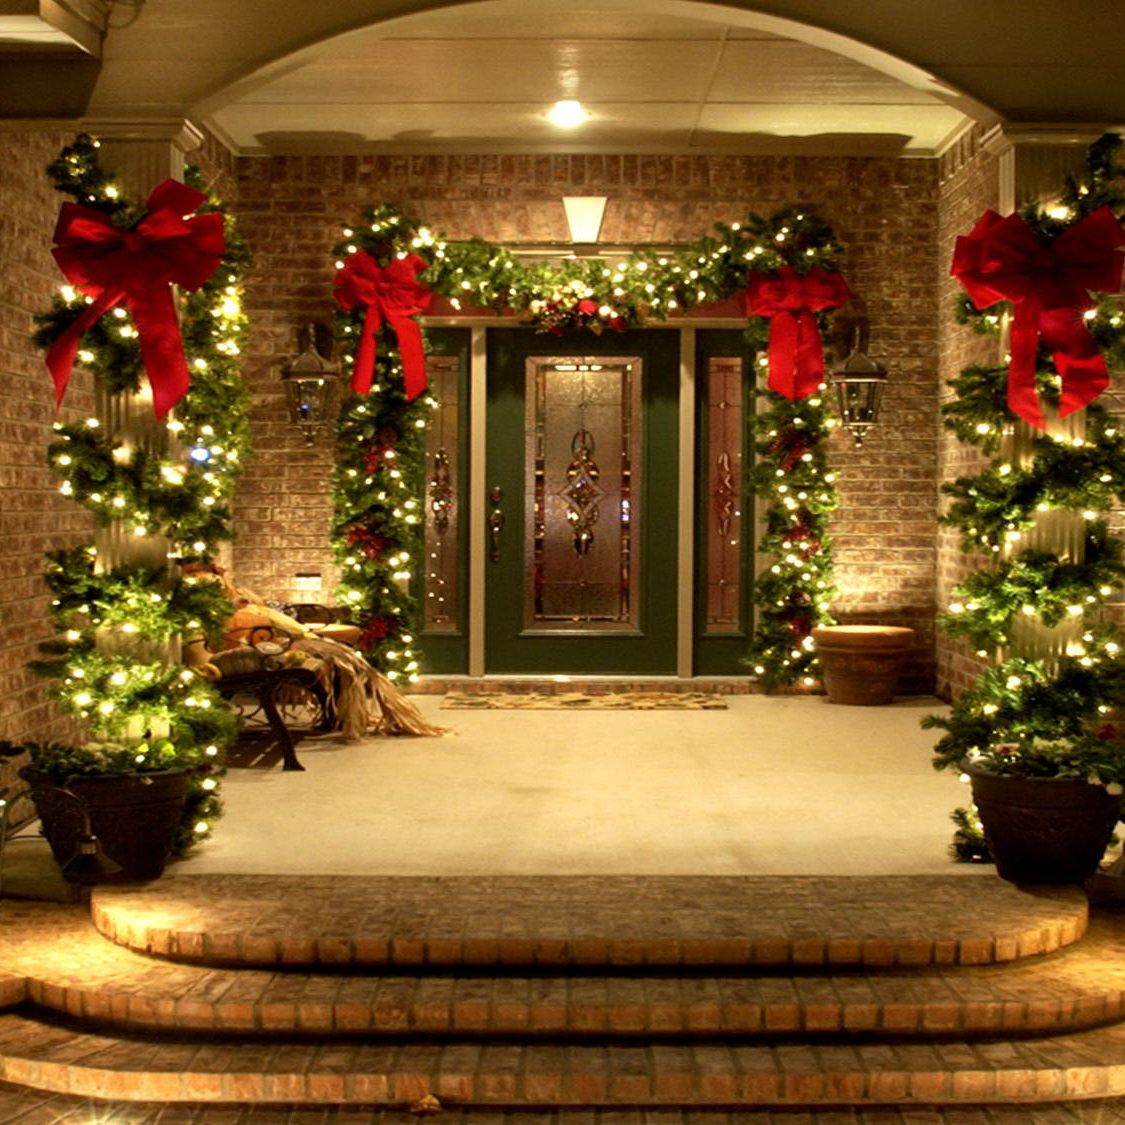 18 most striking diy christmas porch decorations that will melt your heart - Christmas Porch Railing Decorations